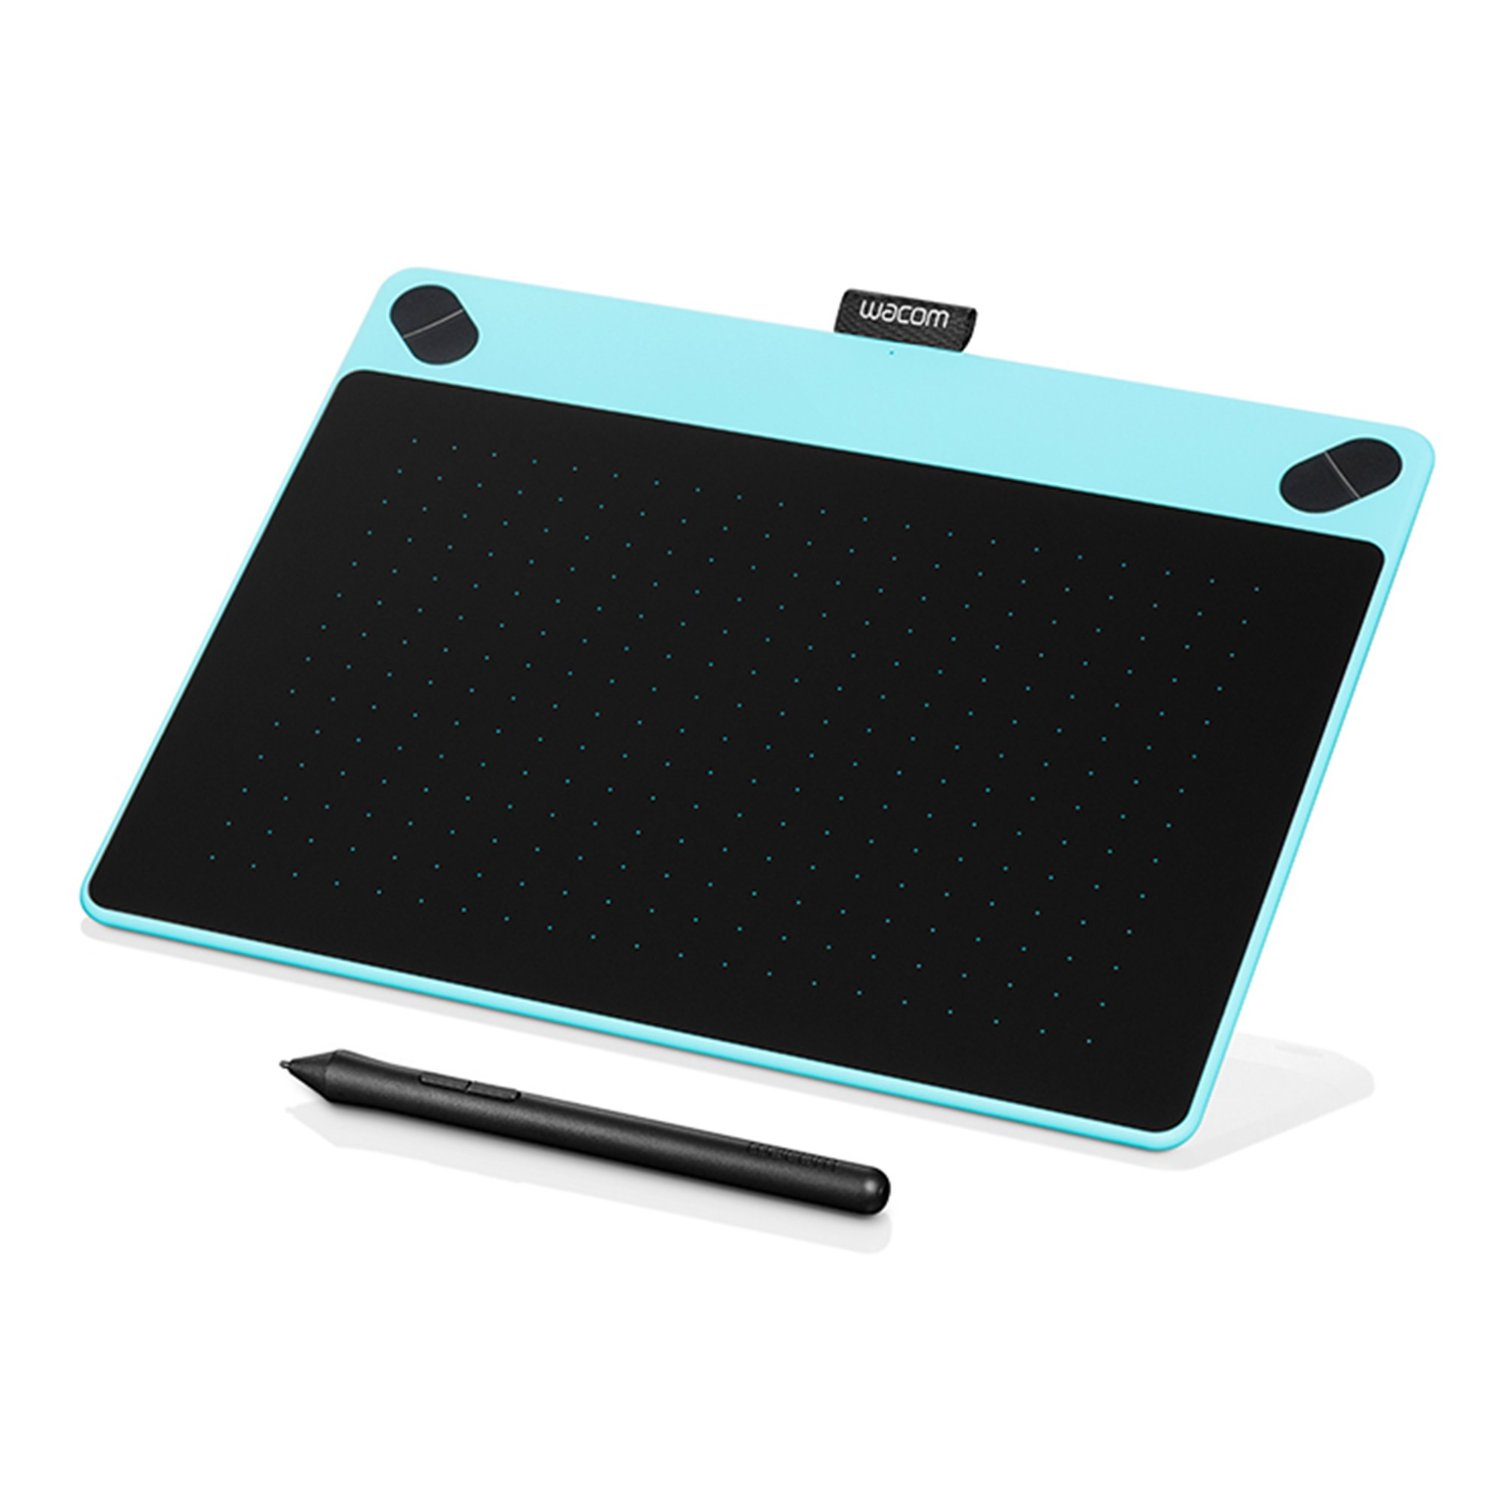 Wacom Intuos ART Pen & Touch Tablet, Various Colors & Sizes